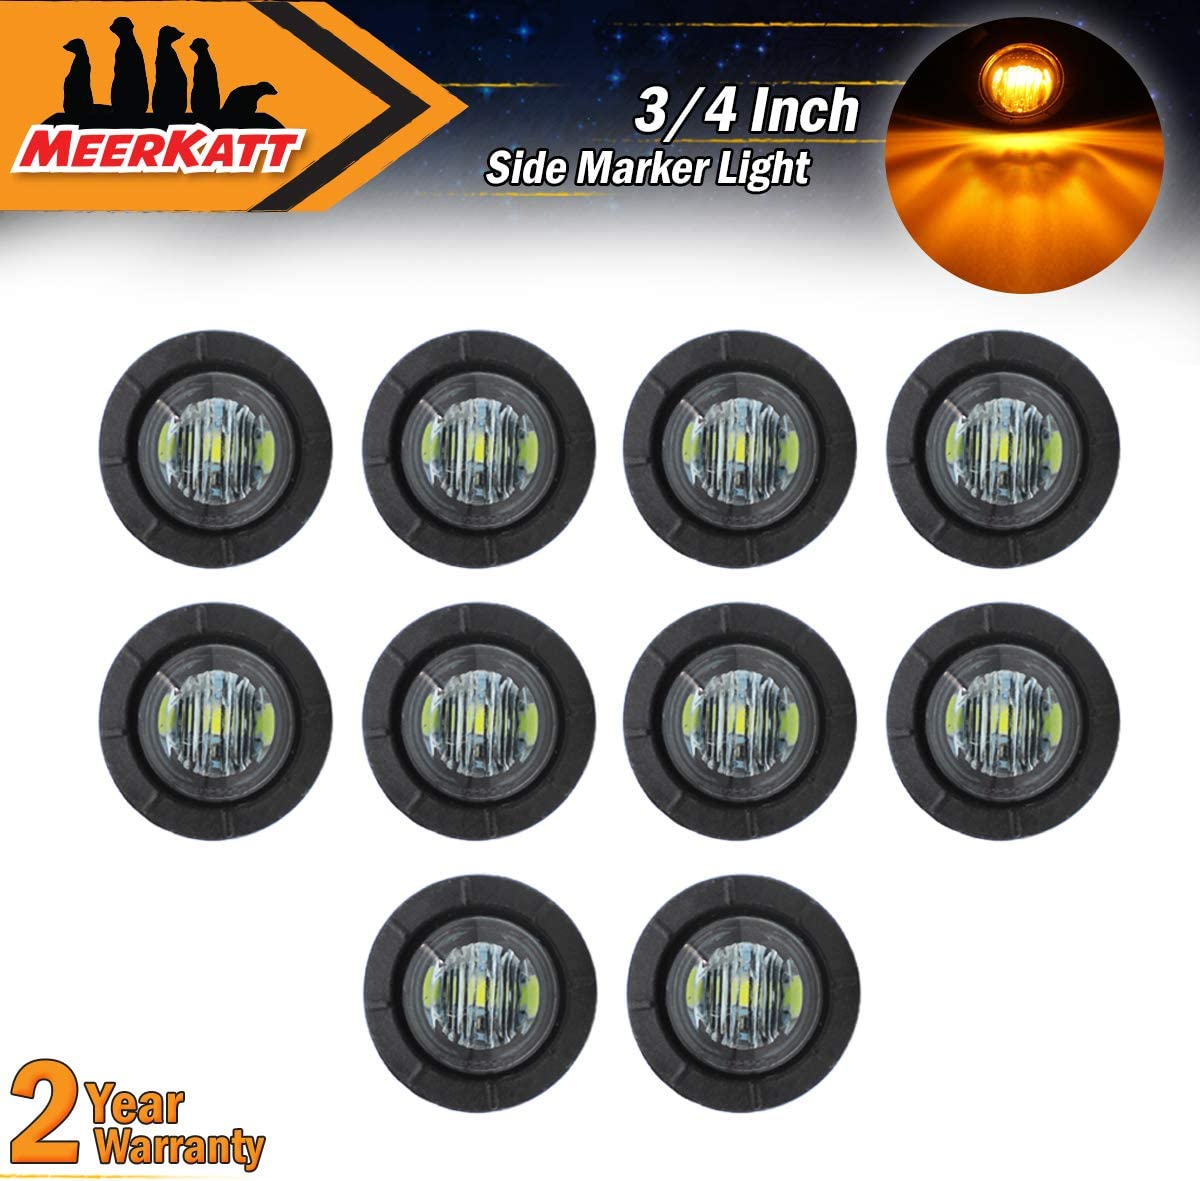 Pack of 50 Meerkatt 3//4 Inch Mini Round Smoked Lens Amber LED Side Marker Clearance Lamp Front Rear Indicator Light Waterproof Camper ATV SUV Truck Van Boat Trailer Lorry Jeep RV MPV Grommets 12V D